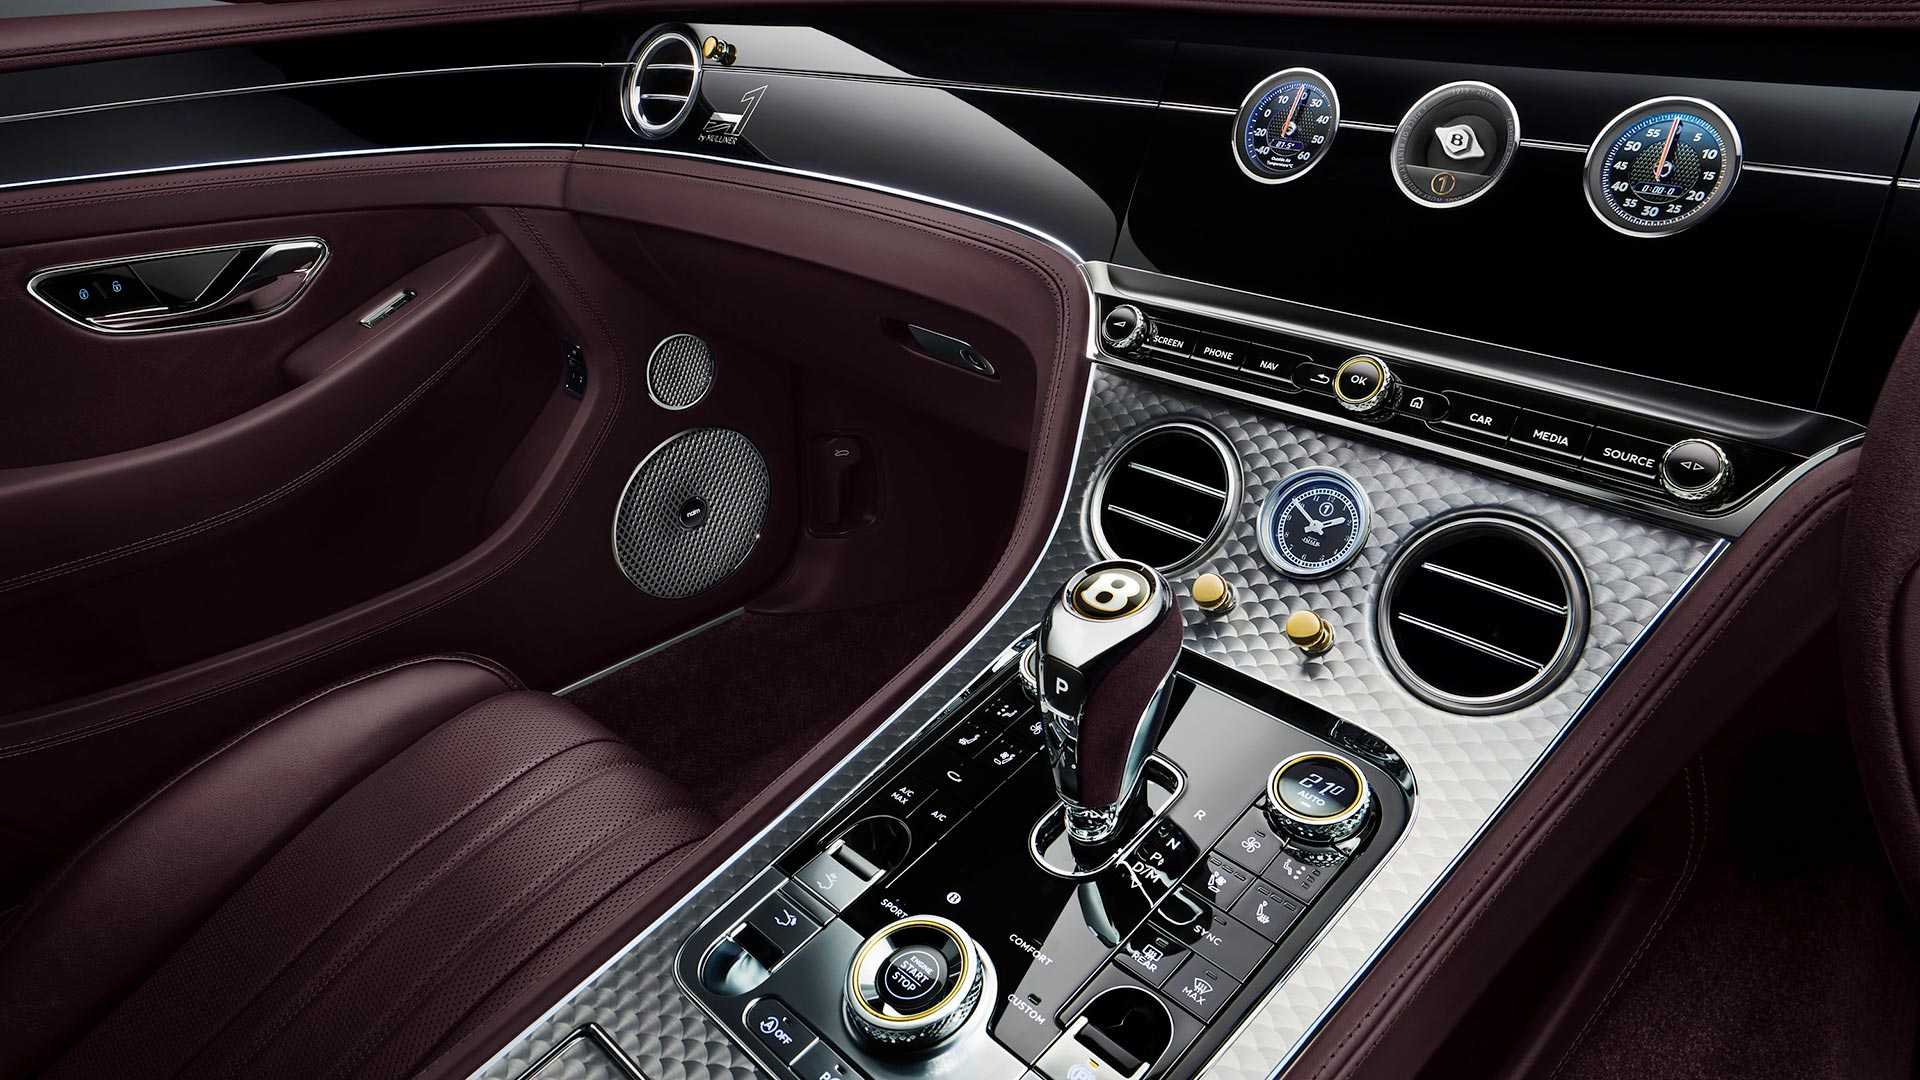 2020 Bentley Continental GT Convertible Number 1 Edition by Mulliner Interior Detail Wallpapers (9)